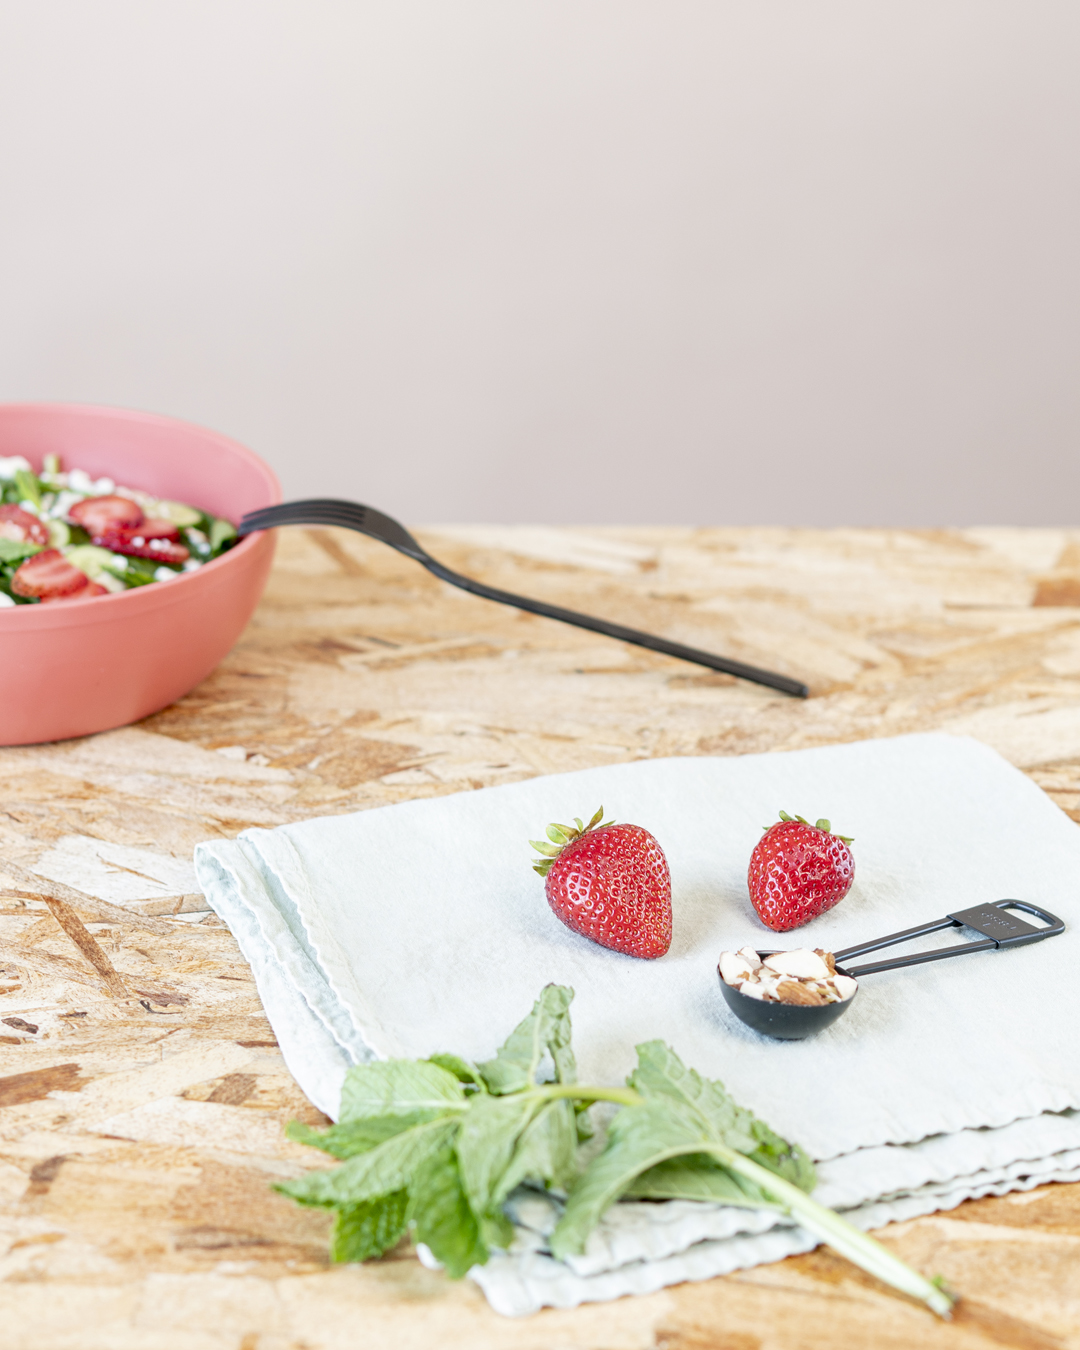 Summer Cucumber and Strawberry Spinach Salad by Knotably Creative House 06.jpg